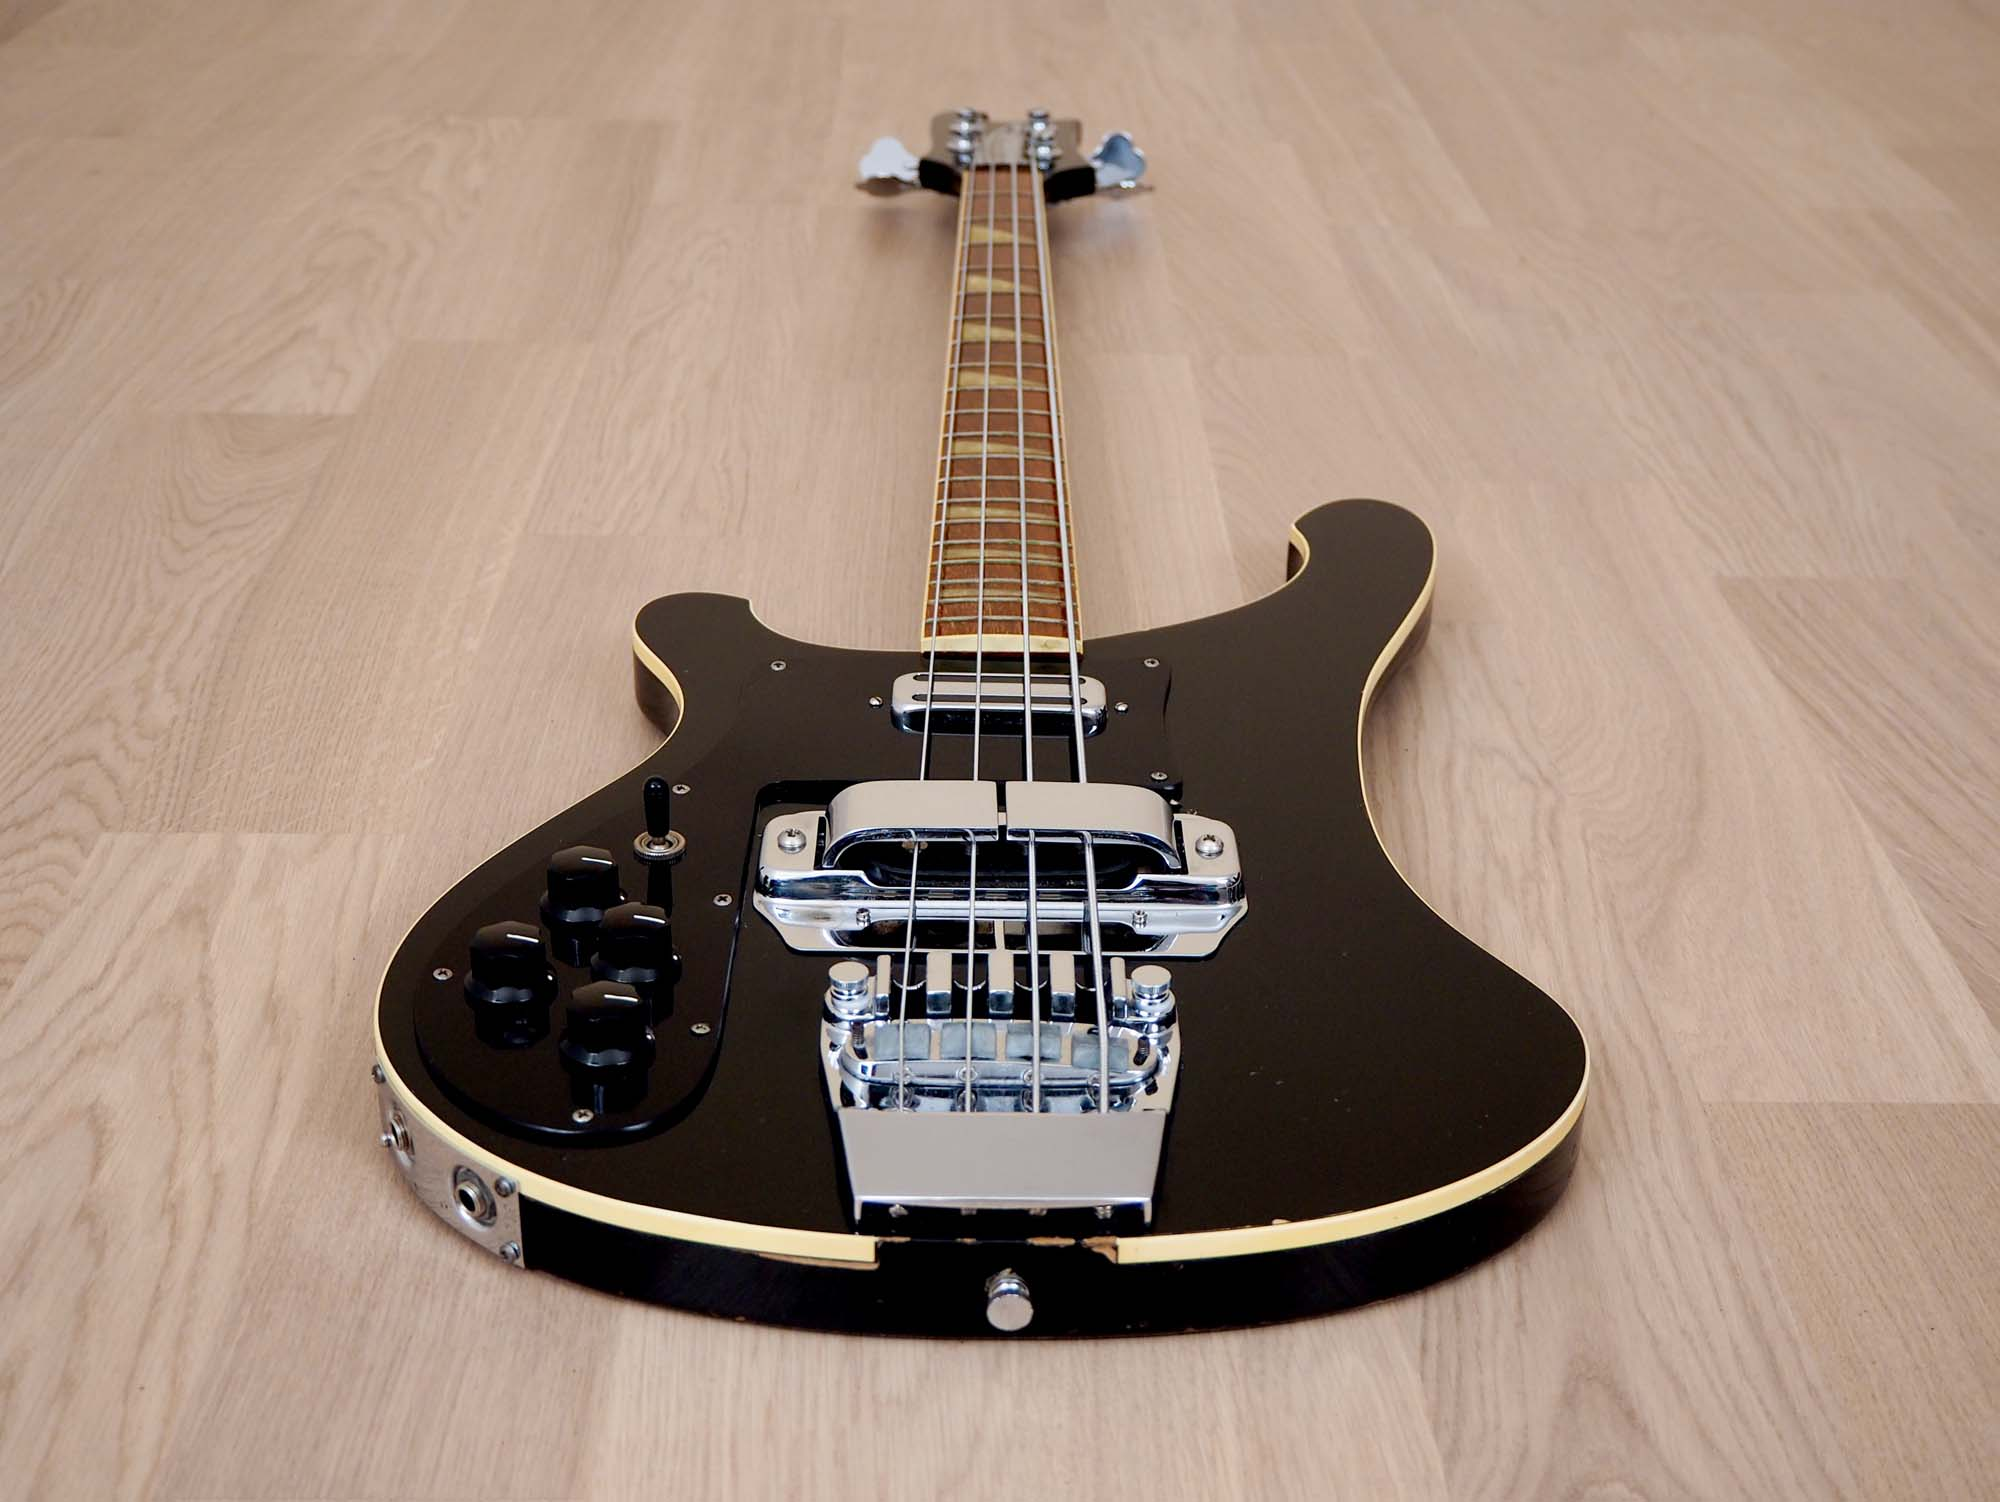 1978 Rickenbacker 4001 Vintage Bass Jetglo Left Handed w/ Toaster Top & Horseshoe Pickups